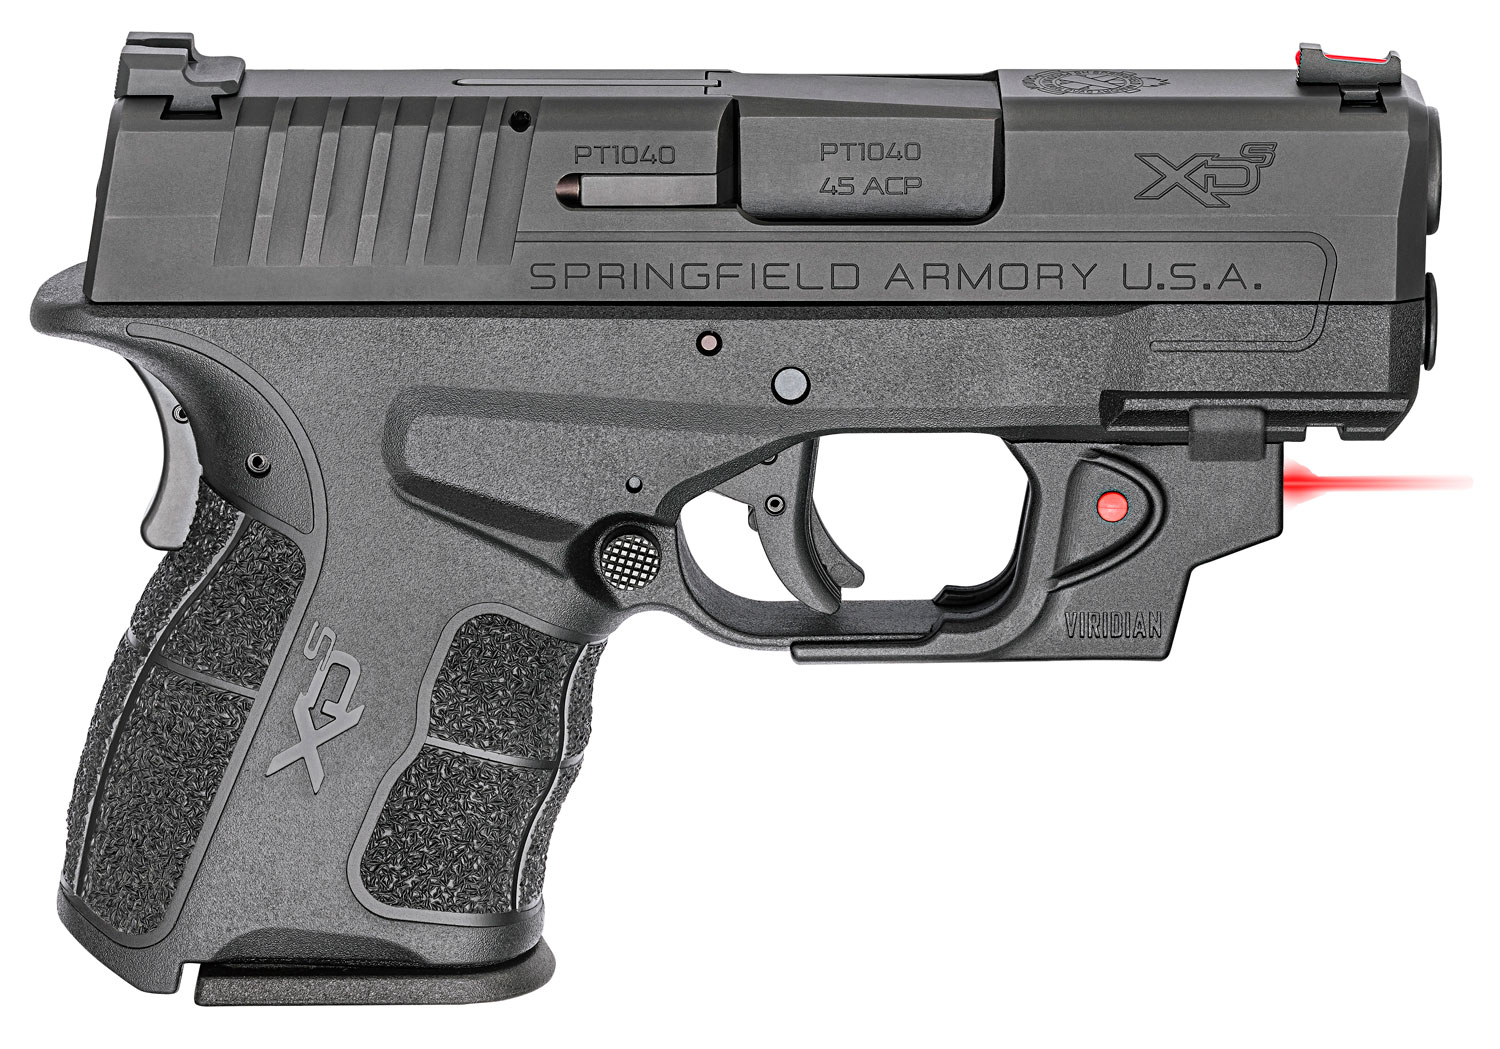 XDE 45ACP BLK 3.3 7+1 RD LSR - RED VIRIDIAN LASER | 2 MAGS